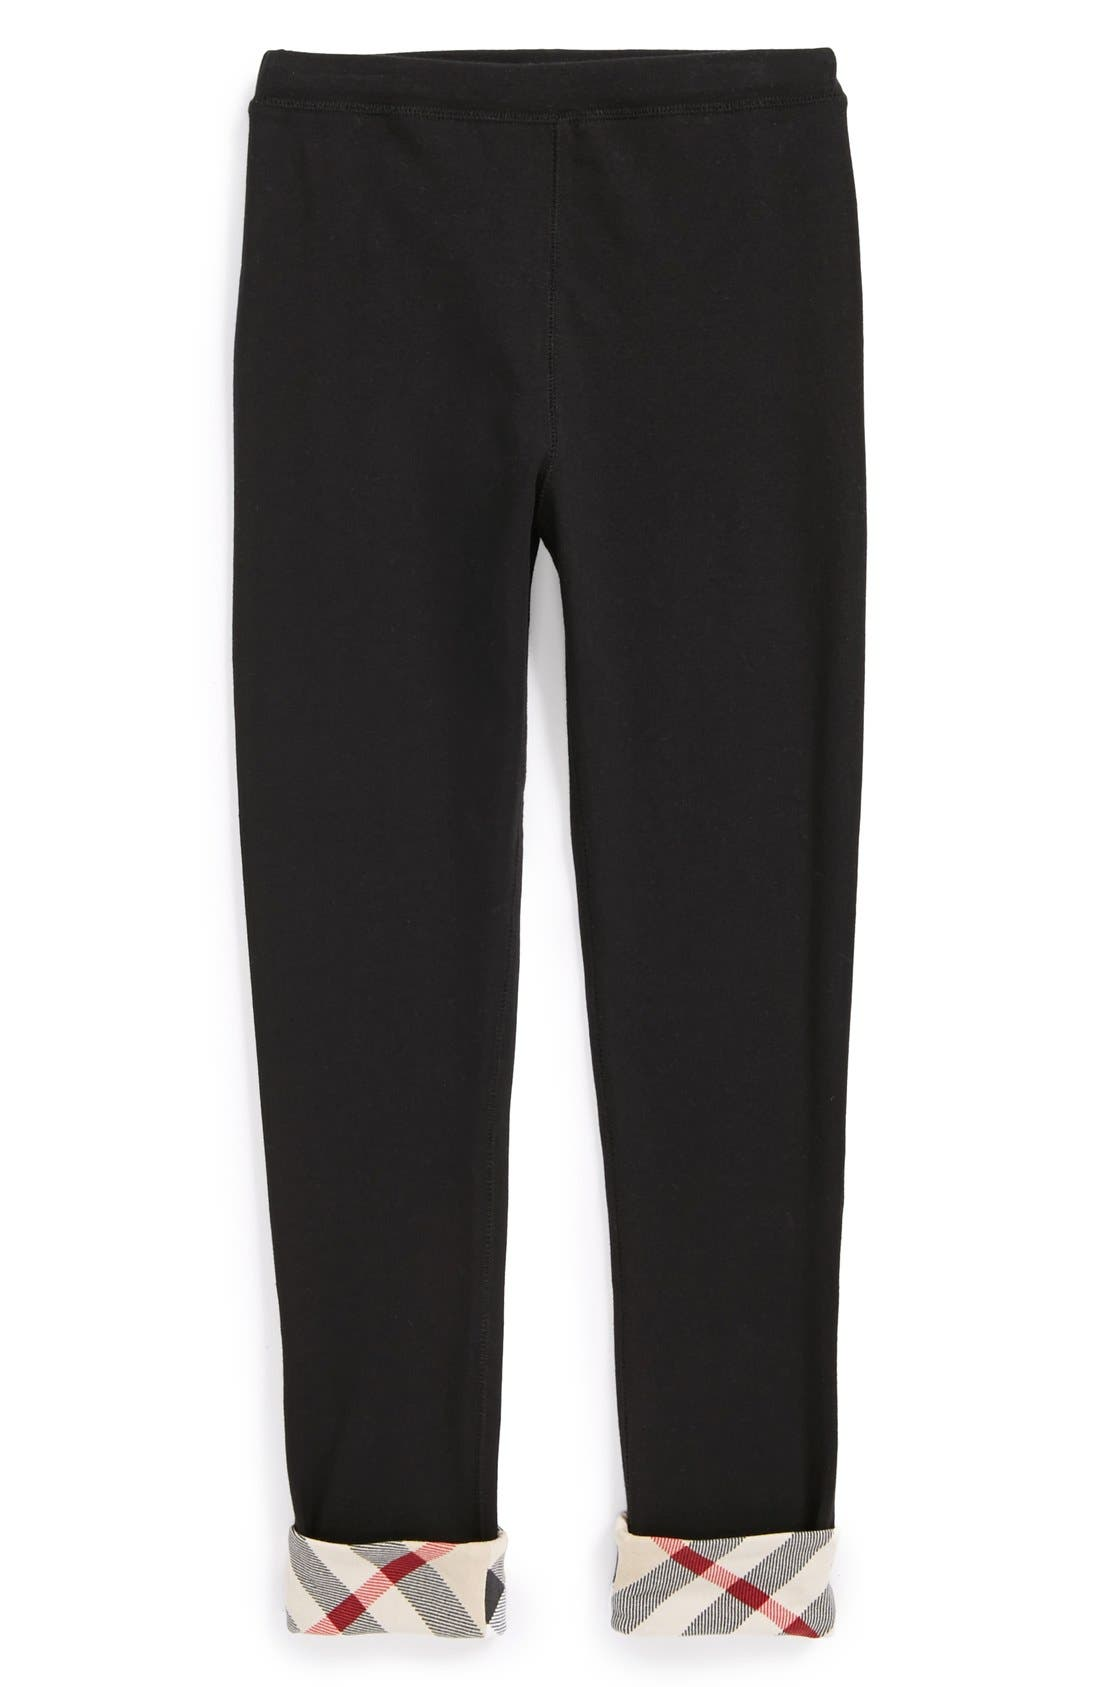 Check Cuff Pants,                             Main thumbnail 1, color,                             Black